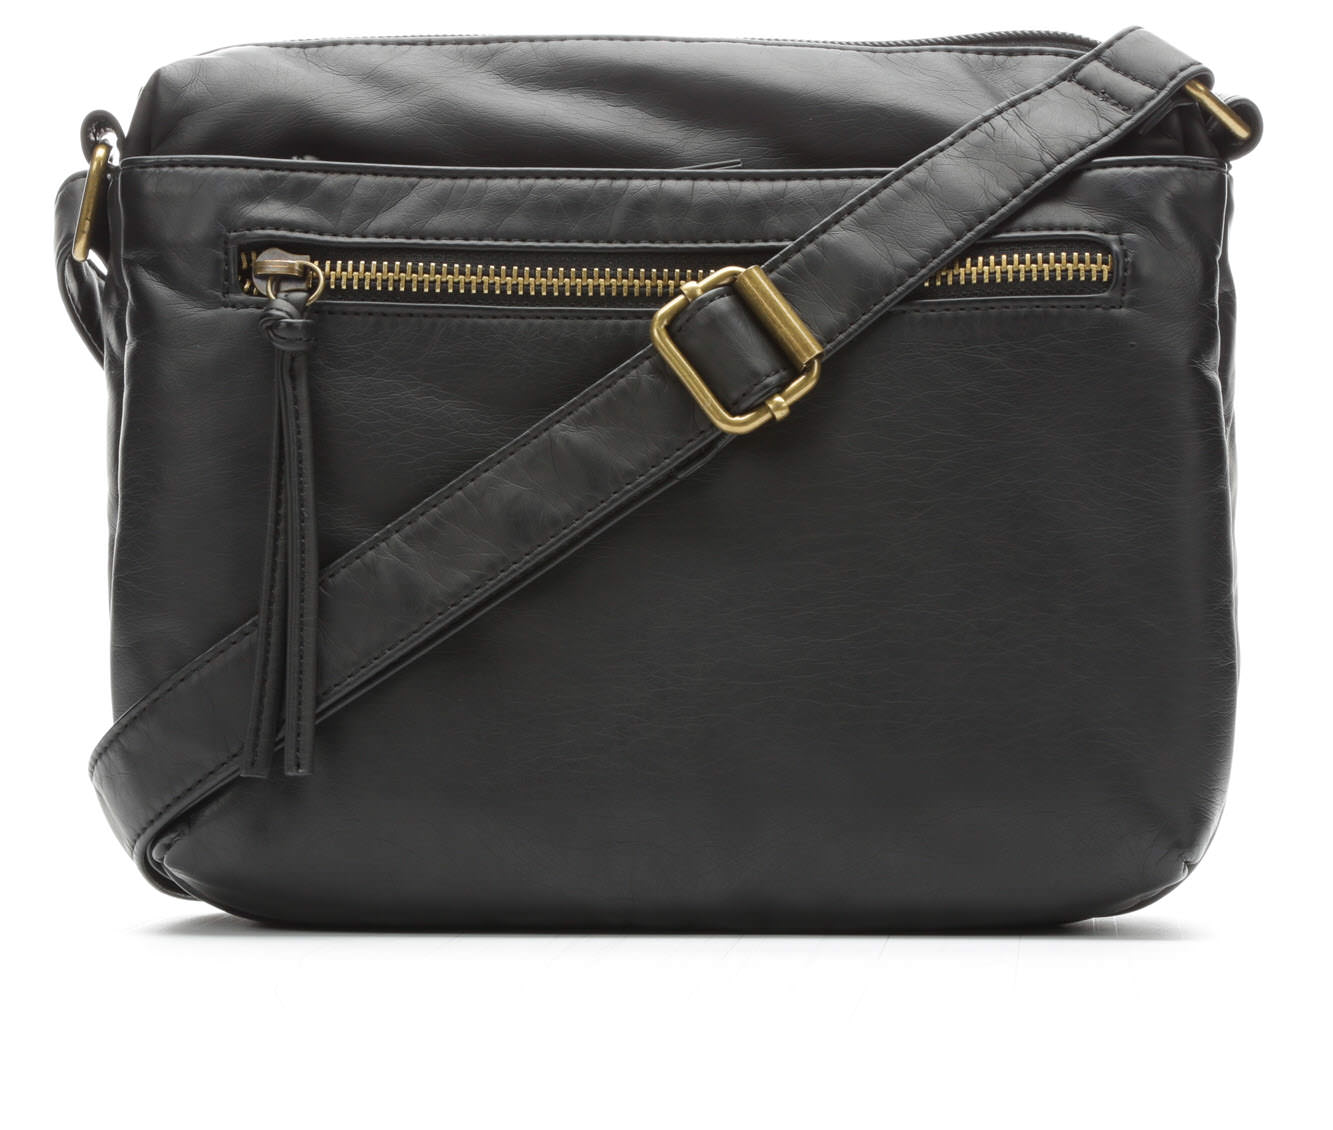 Image of Bueno Of California Mini Crossbody Handbag